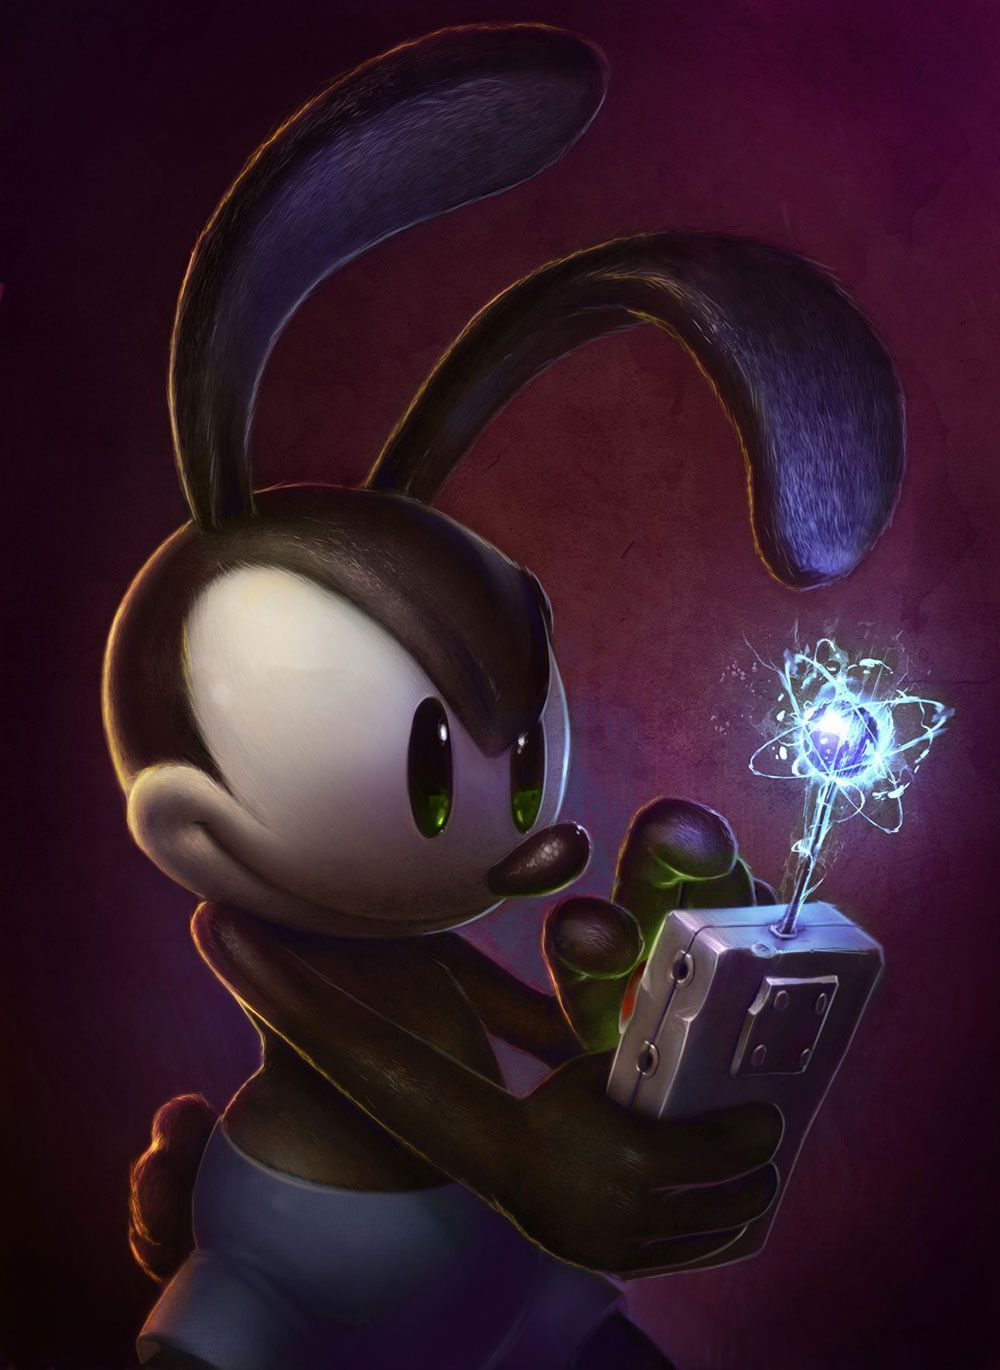 Oswald The Lucky Rabbit Wallpapers - Wallpaper Cave